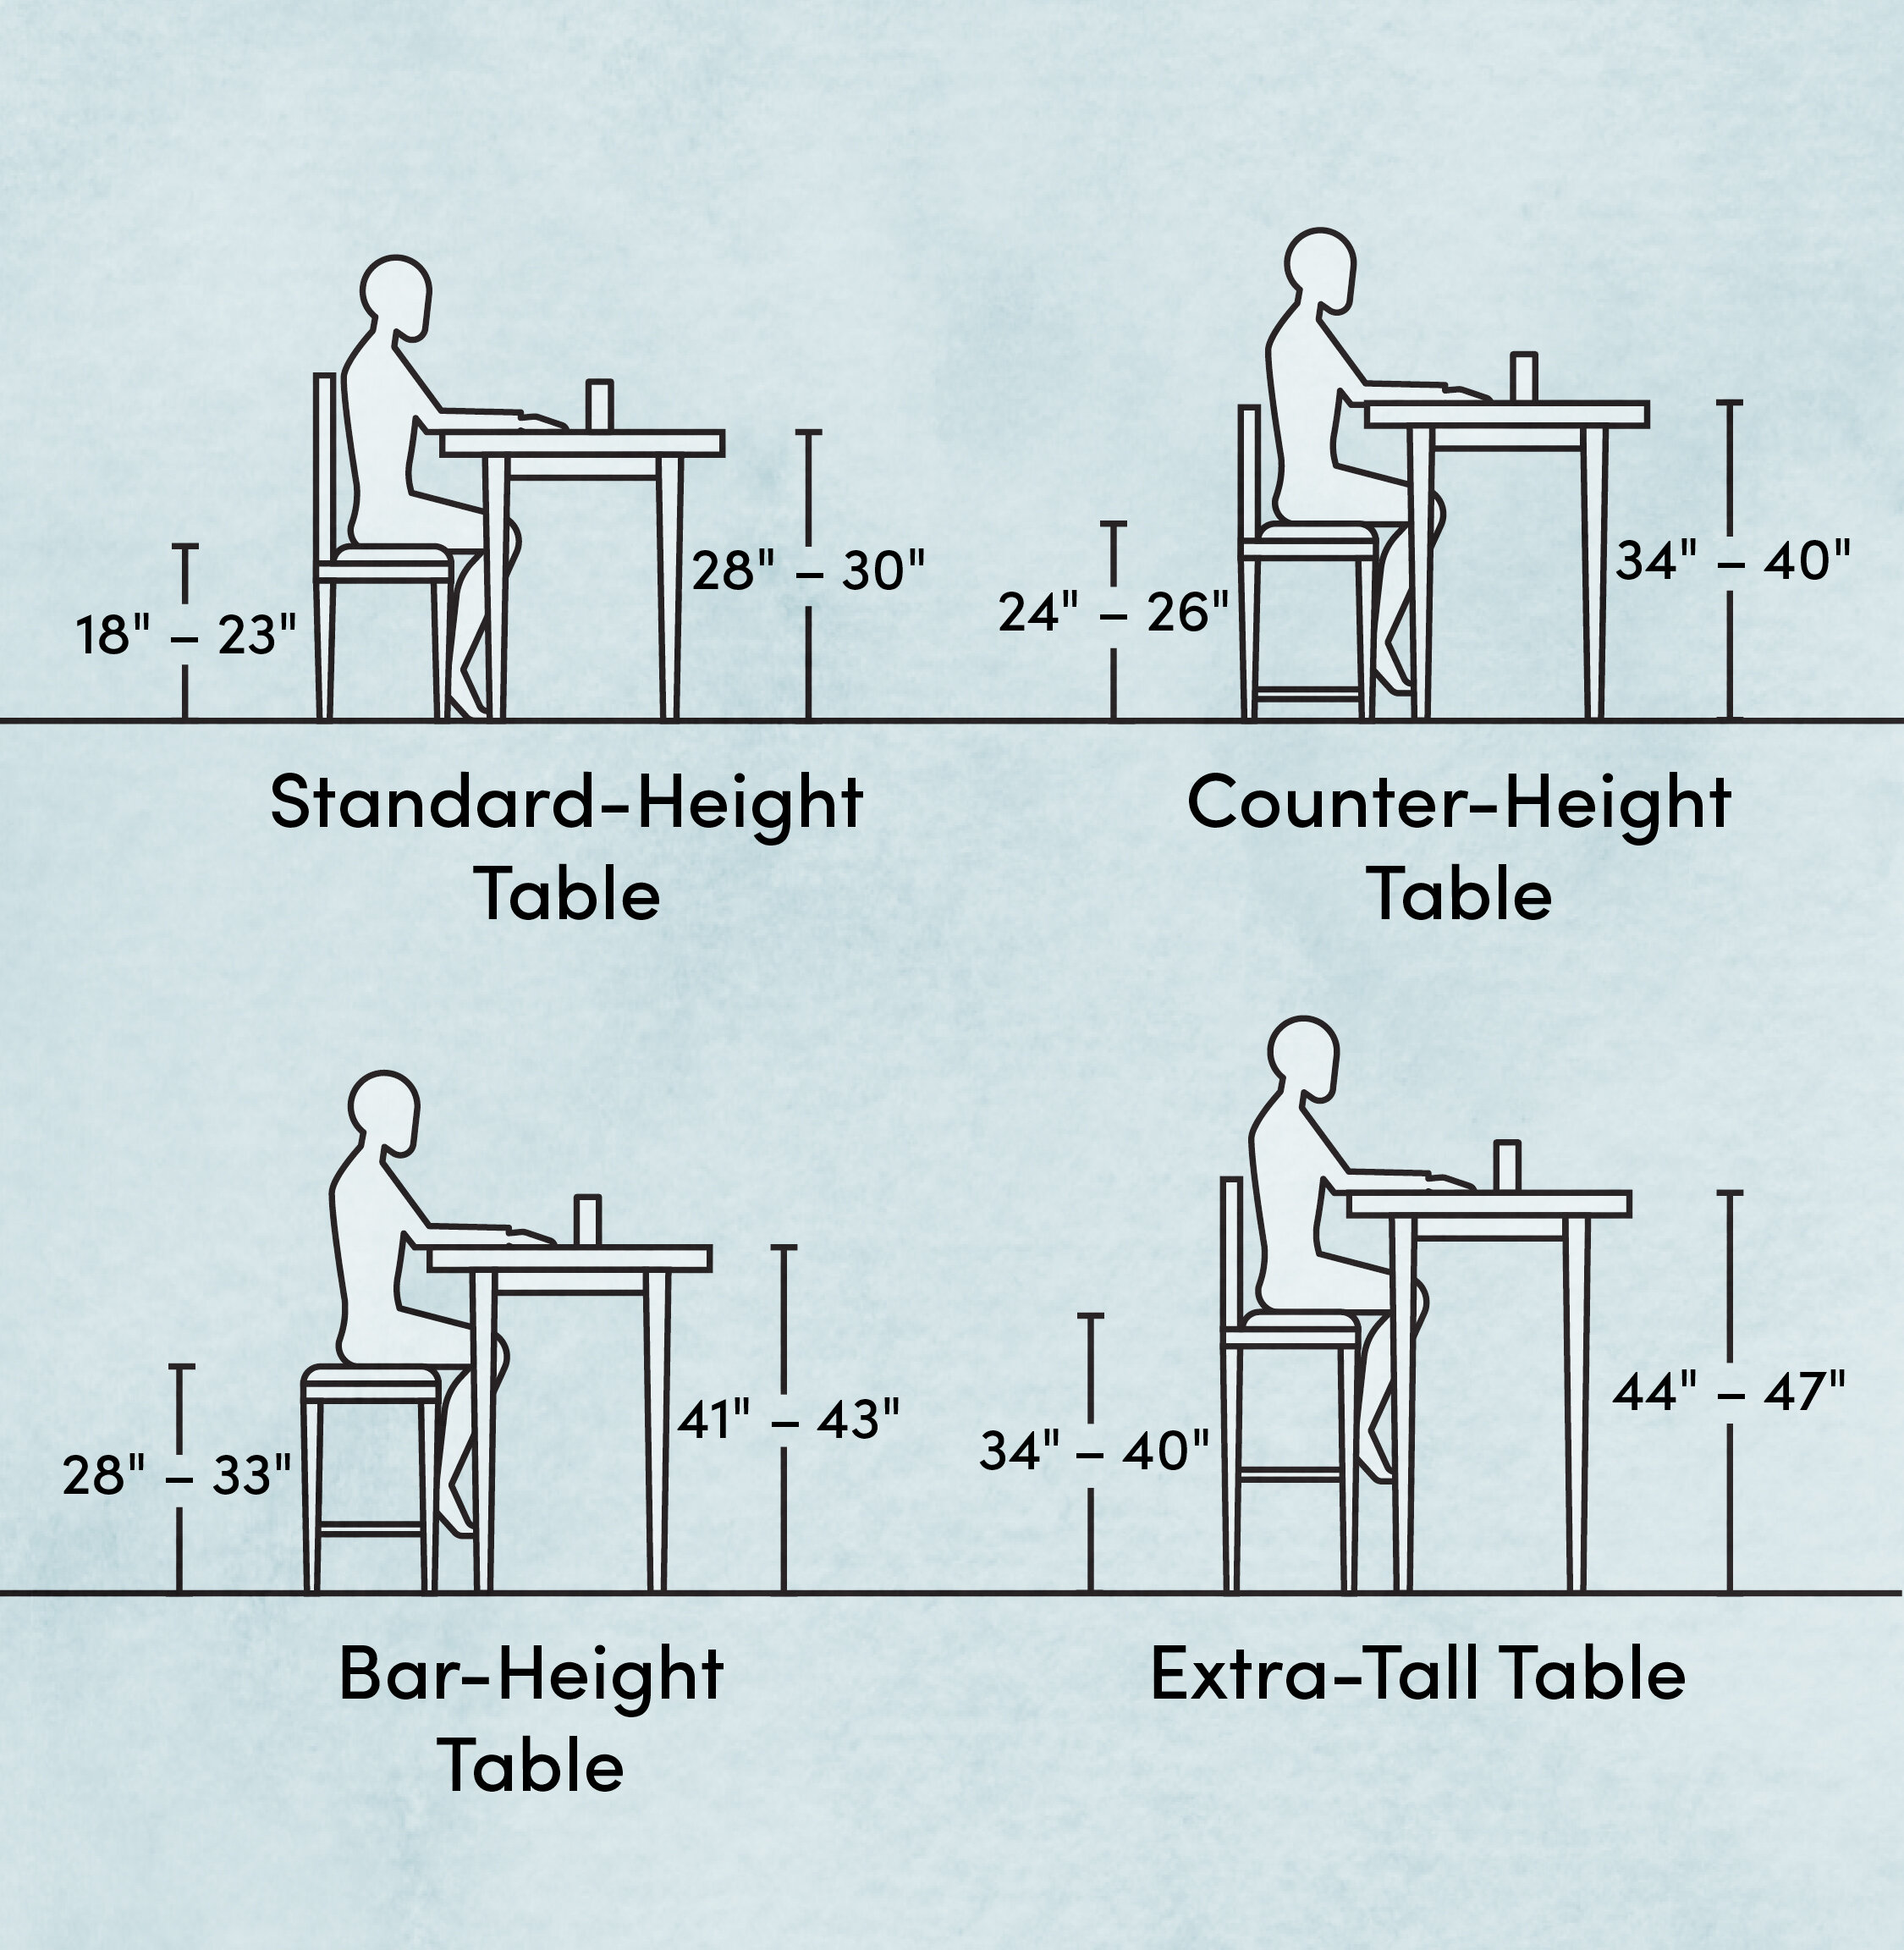 What is the standard table height (the   types of tables and chair heights)